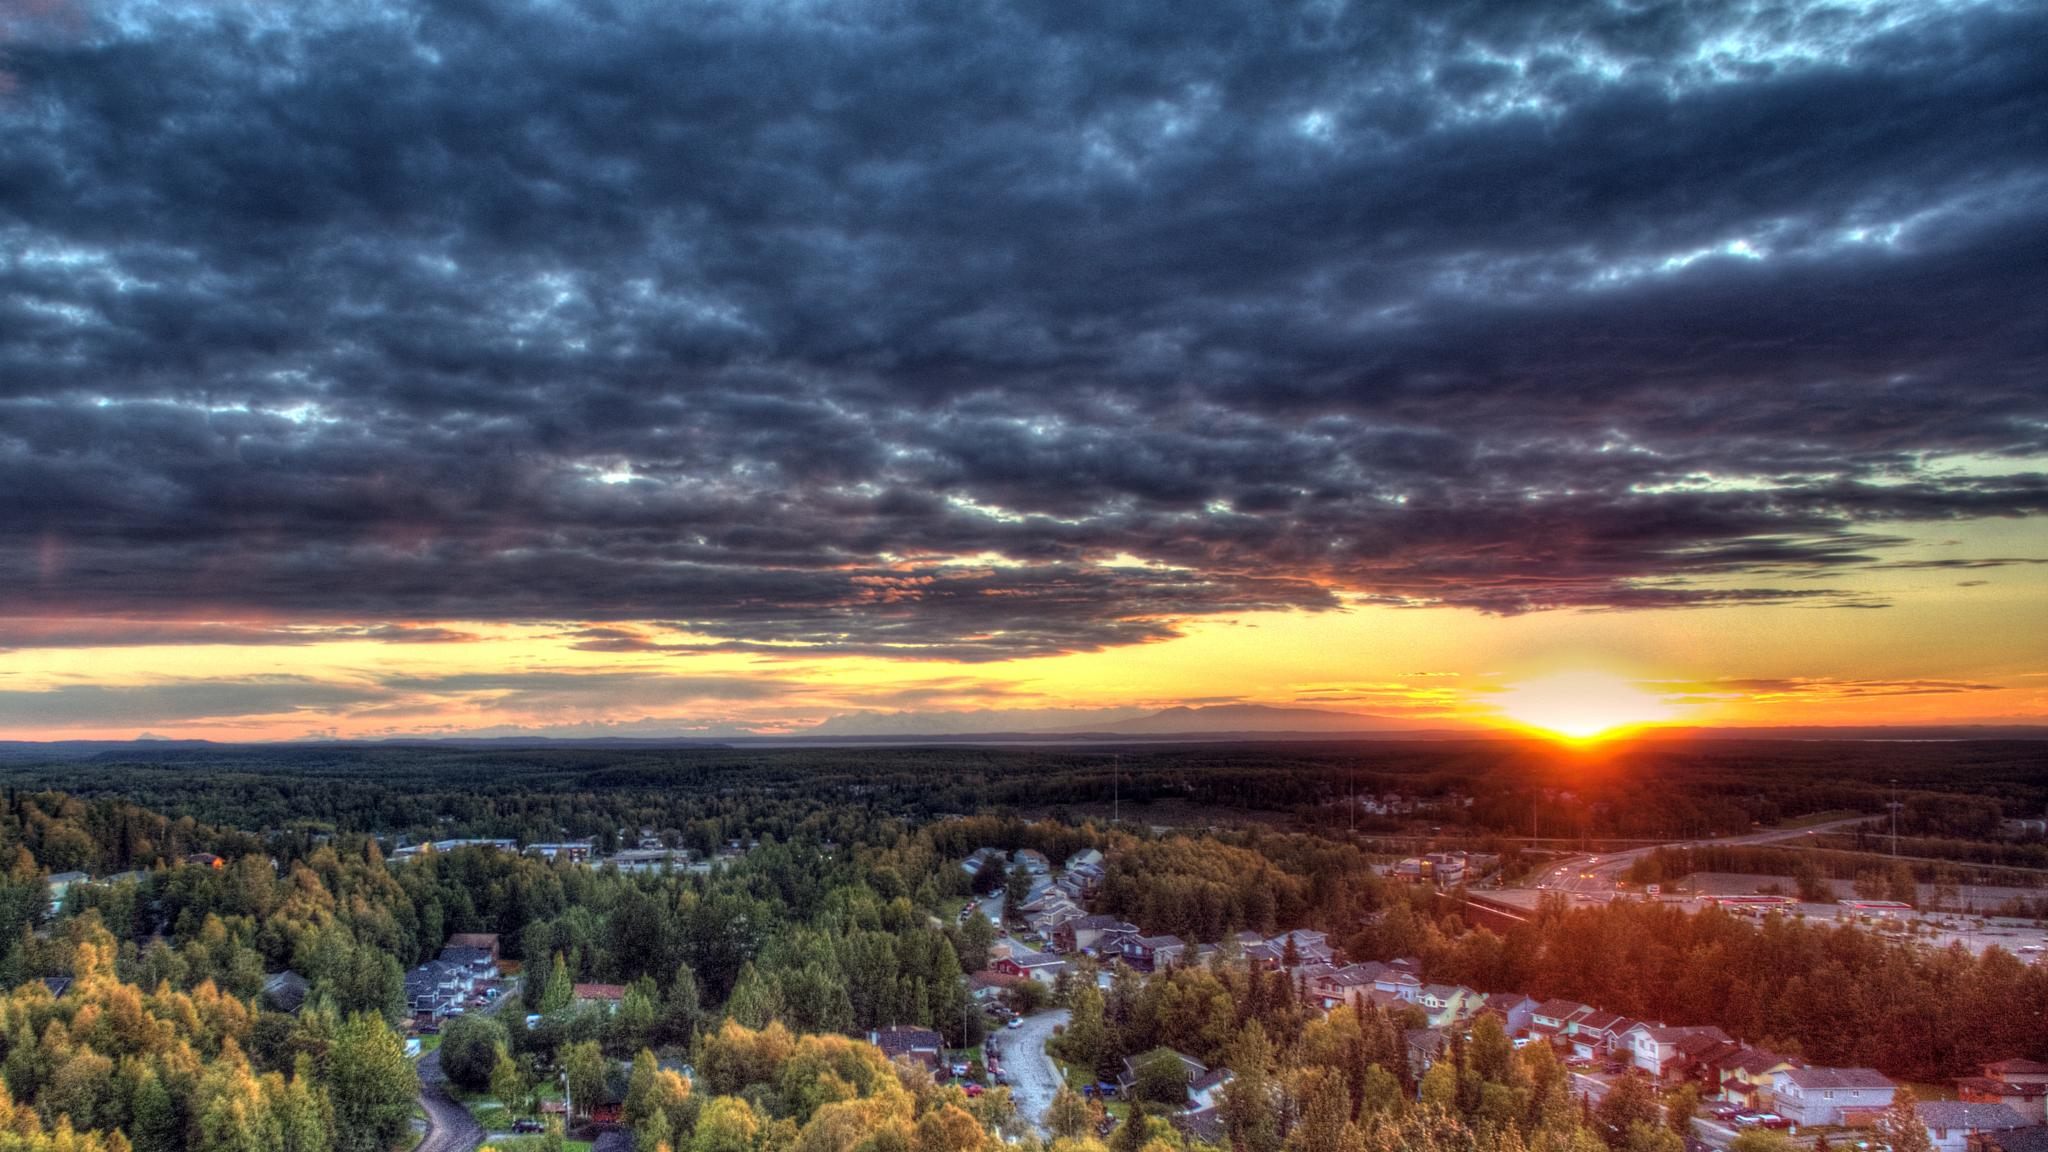 HDR Sunset here in Alaska by Charles Sather